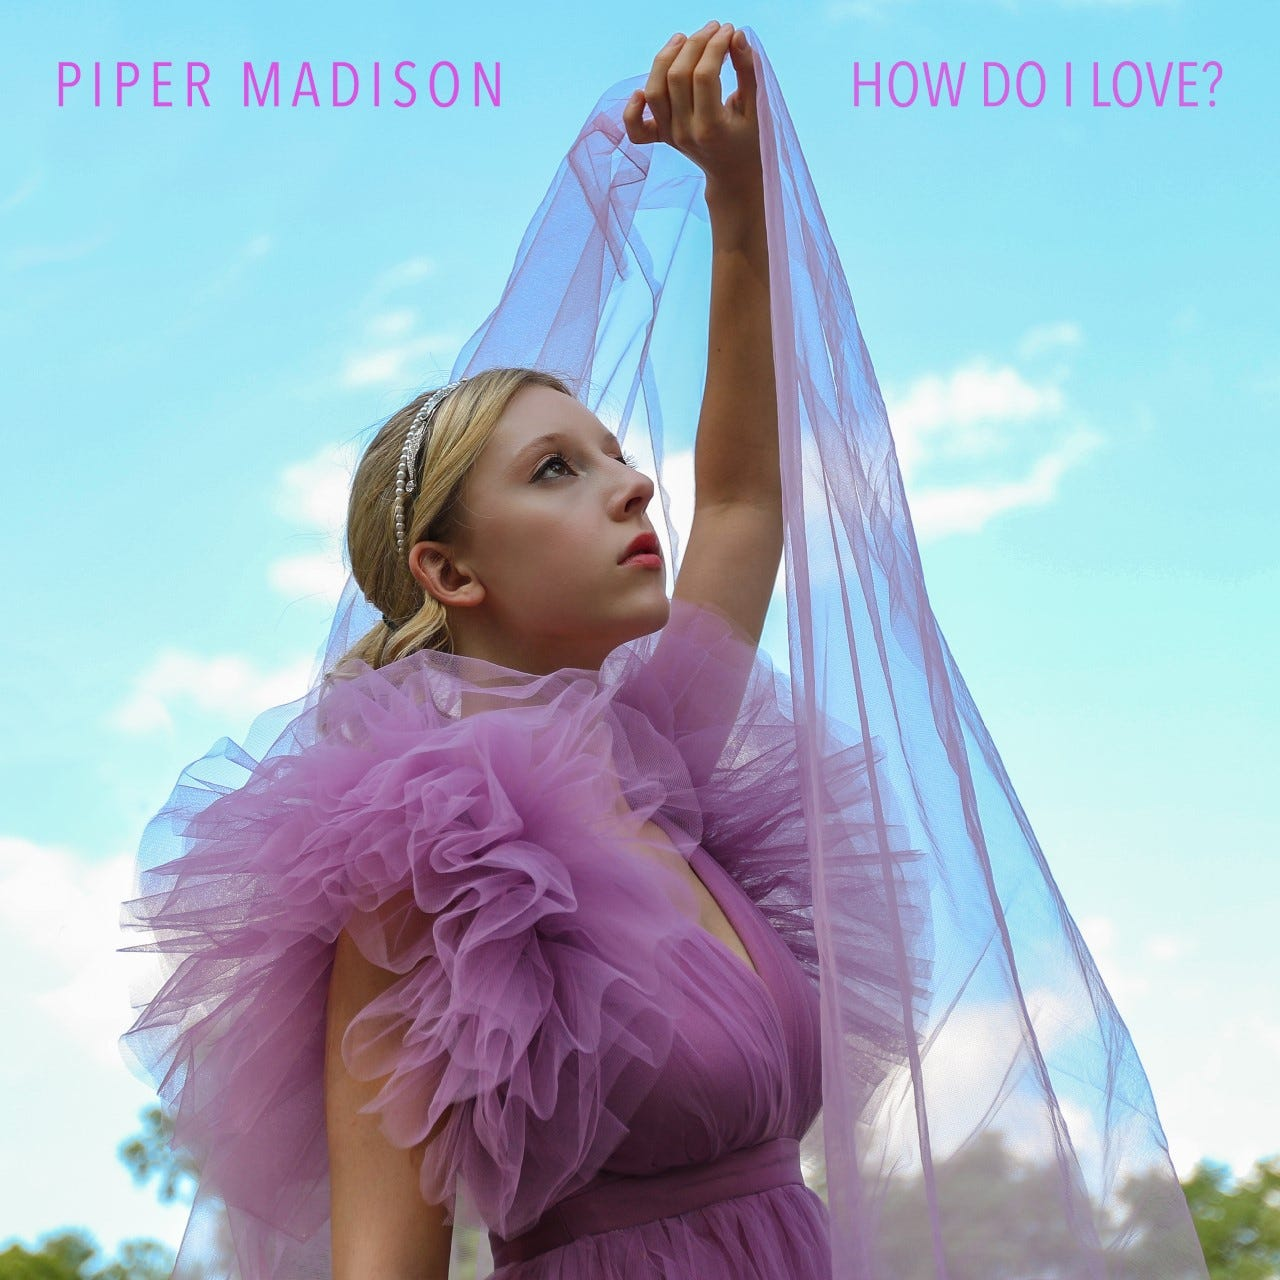 From JCPS to Nickelodeon. Now Louisville s Piper Madison is ready to drop her second album